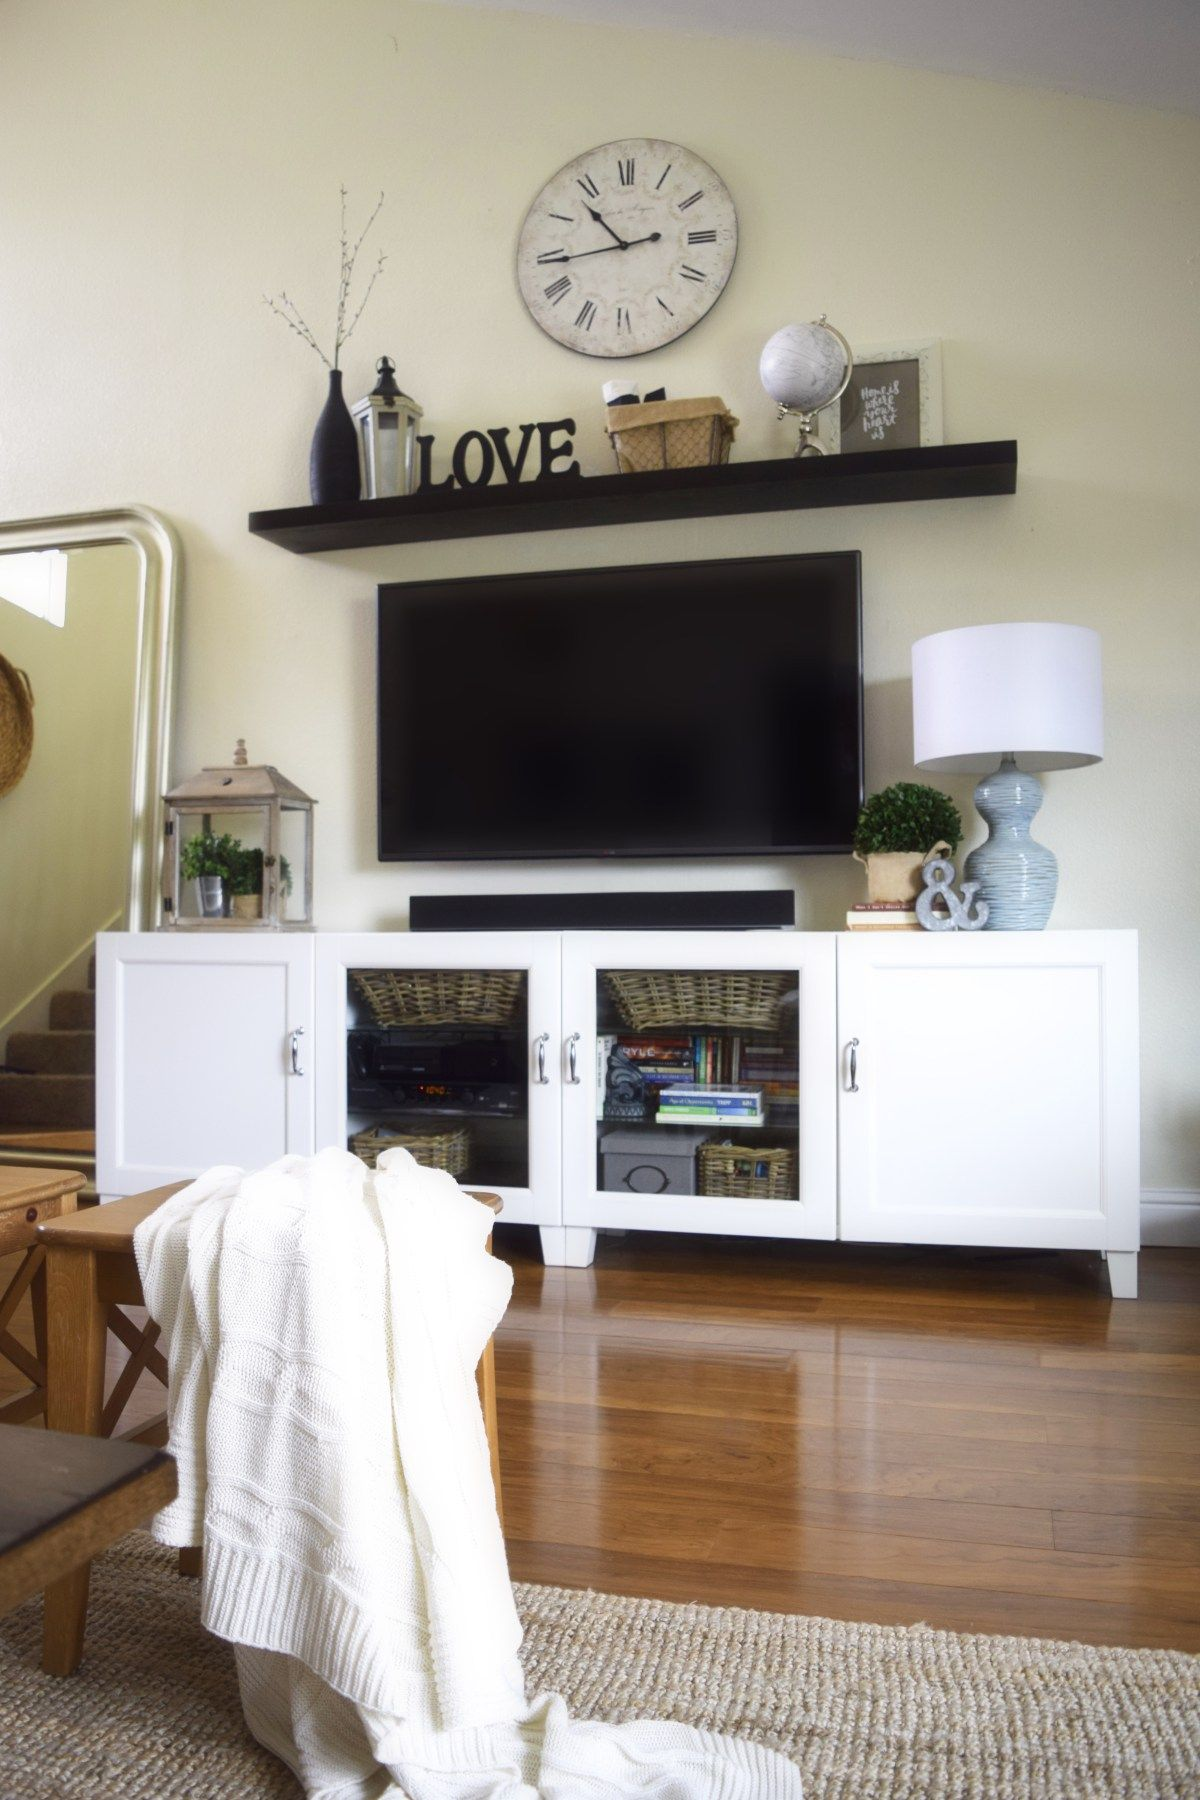 8 Tv Wall Design Ideas For Your Living Room: Pin On Decor, Etc